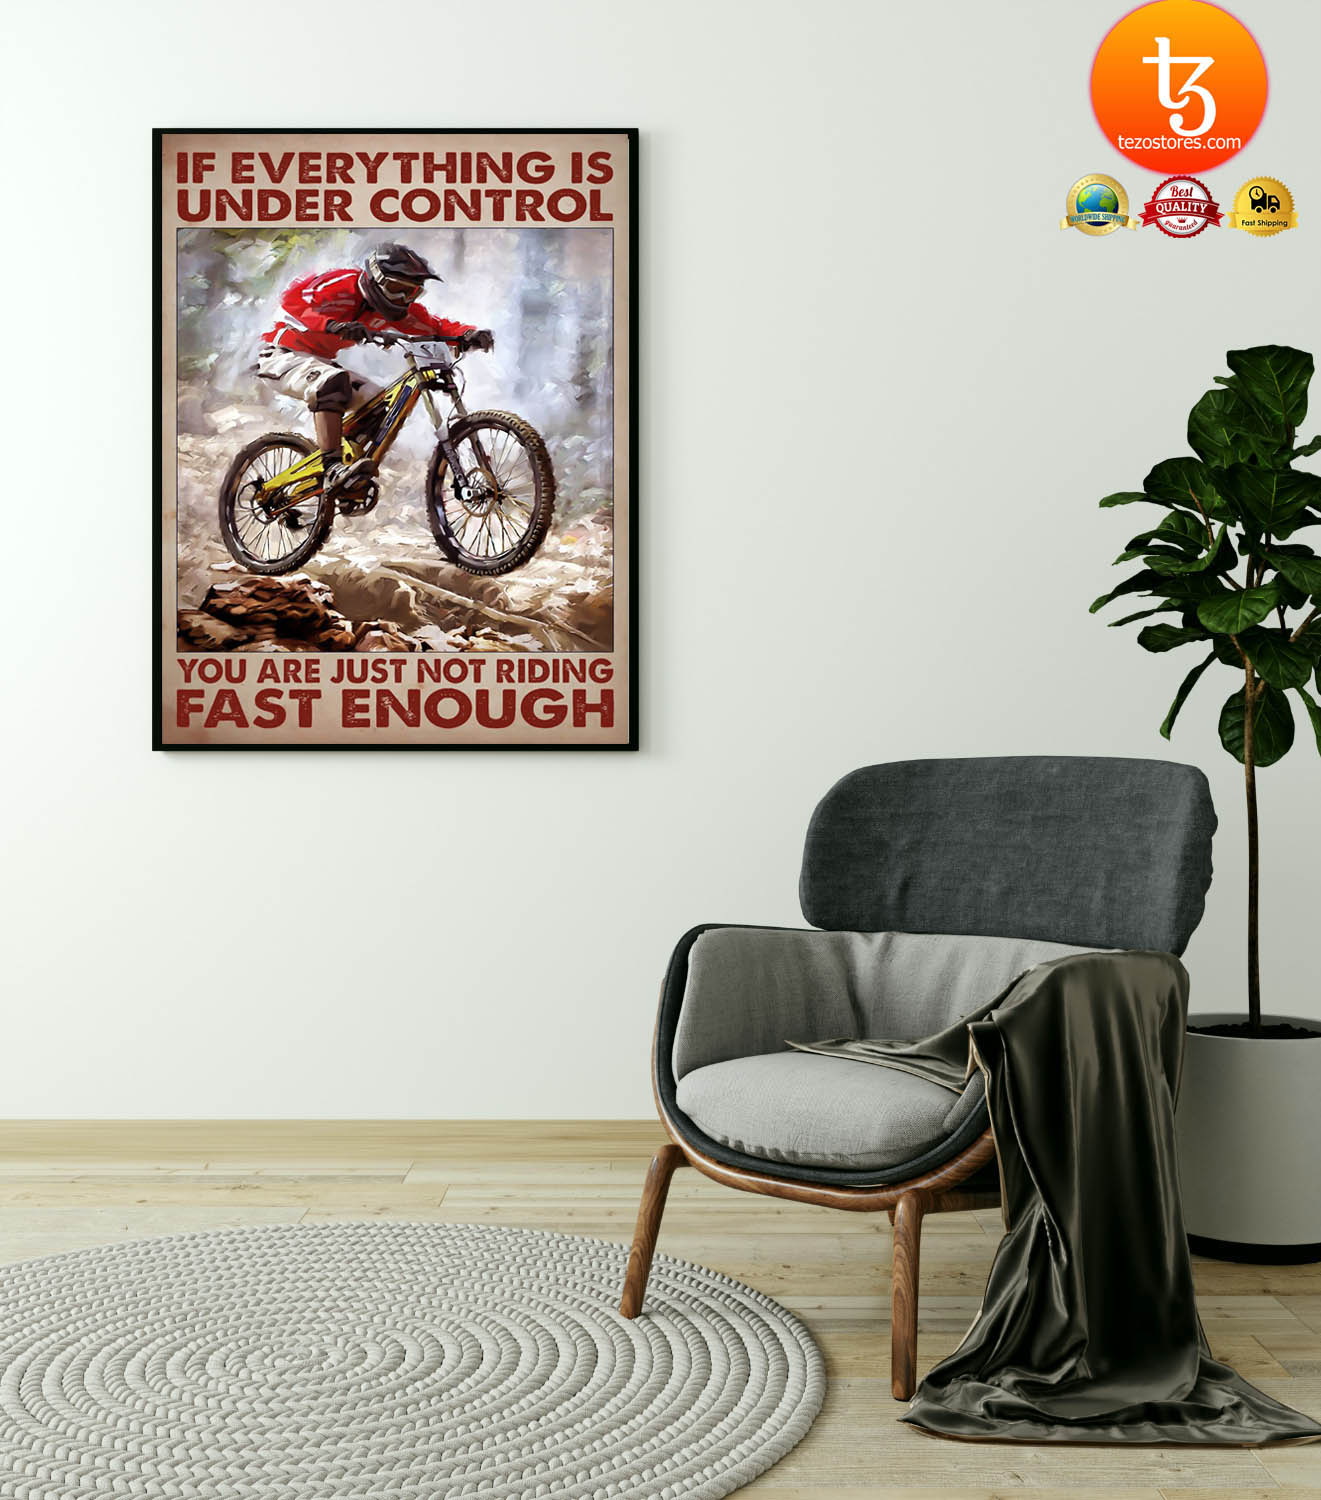 If everything is under control you are just not riding fast enough poster 2